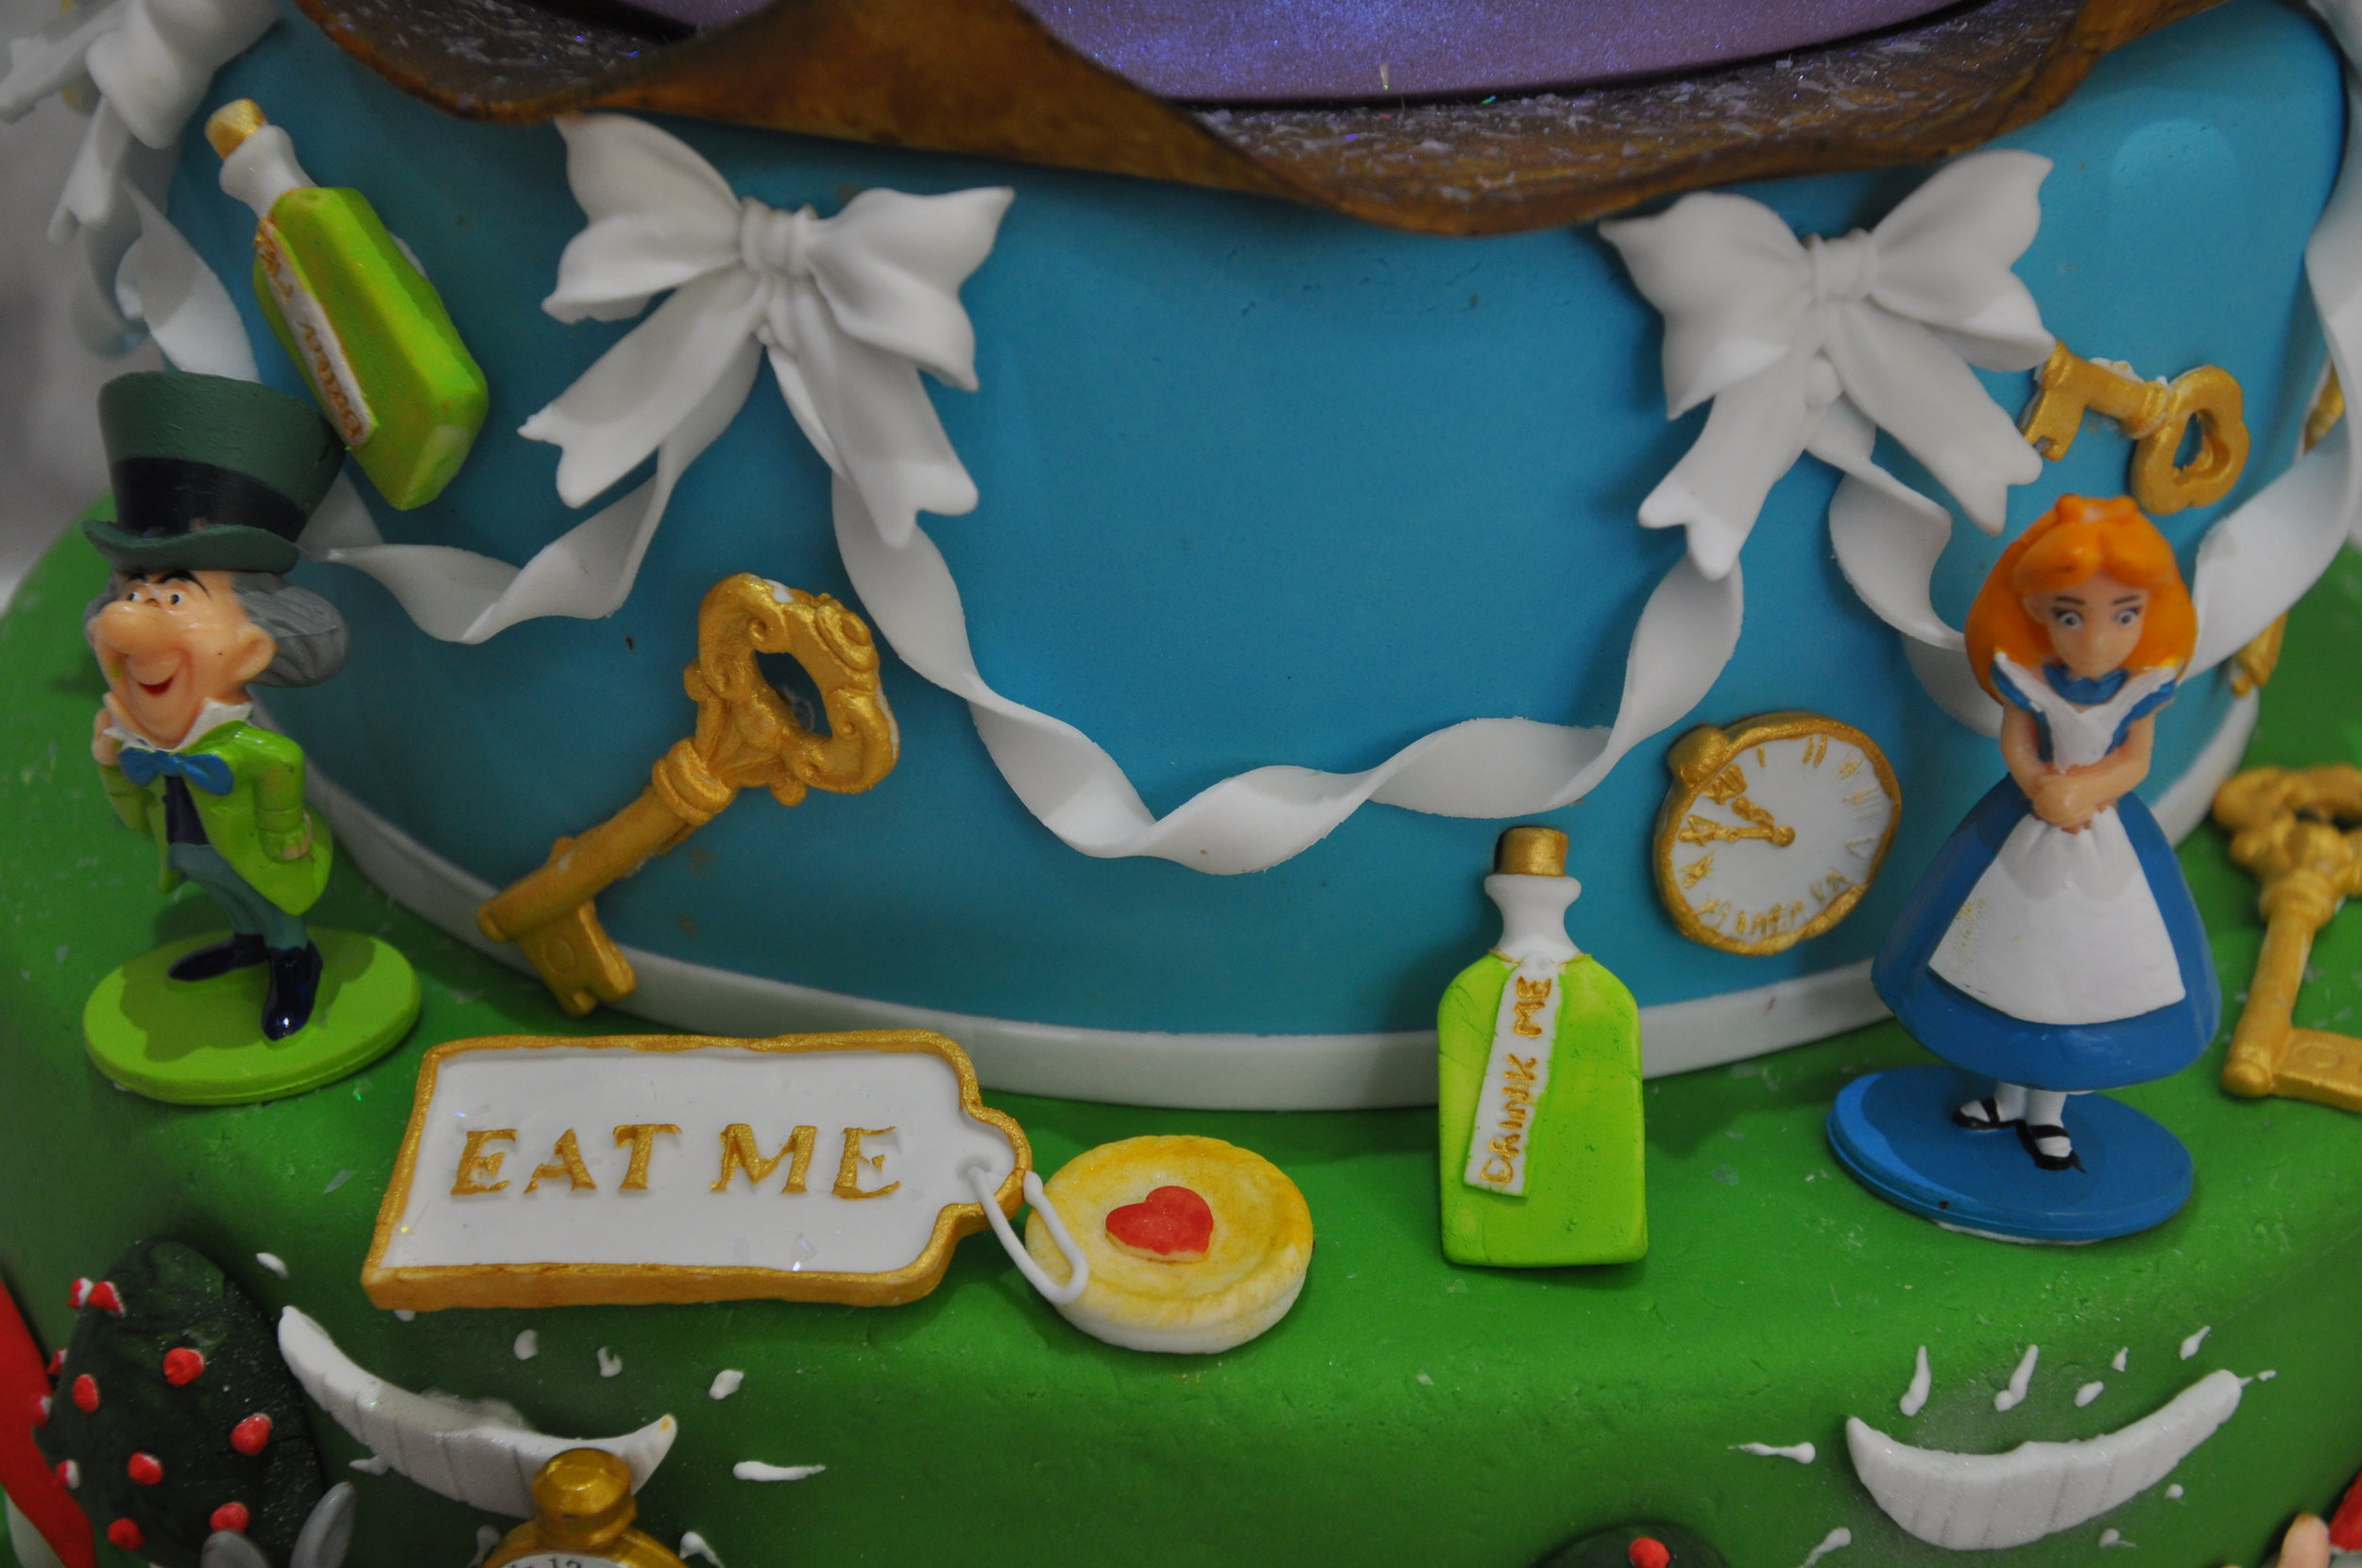 2015-04-25 Alice in Wonderland Birthday Cake 08.JPG